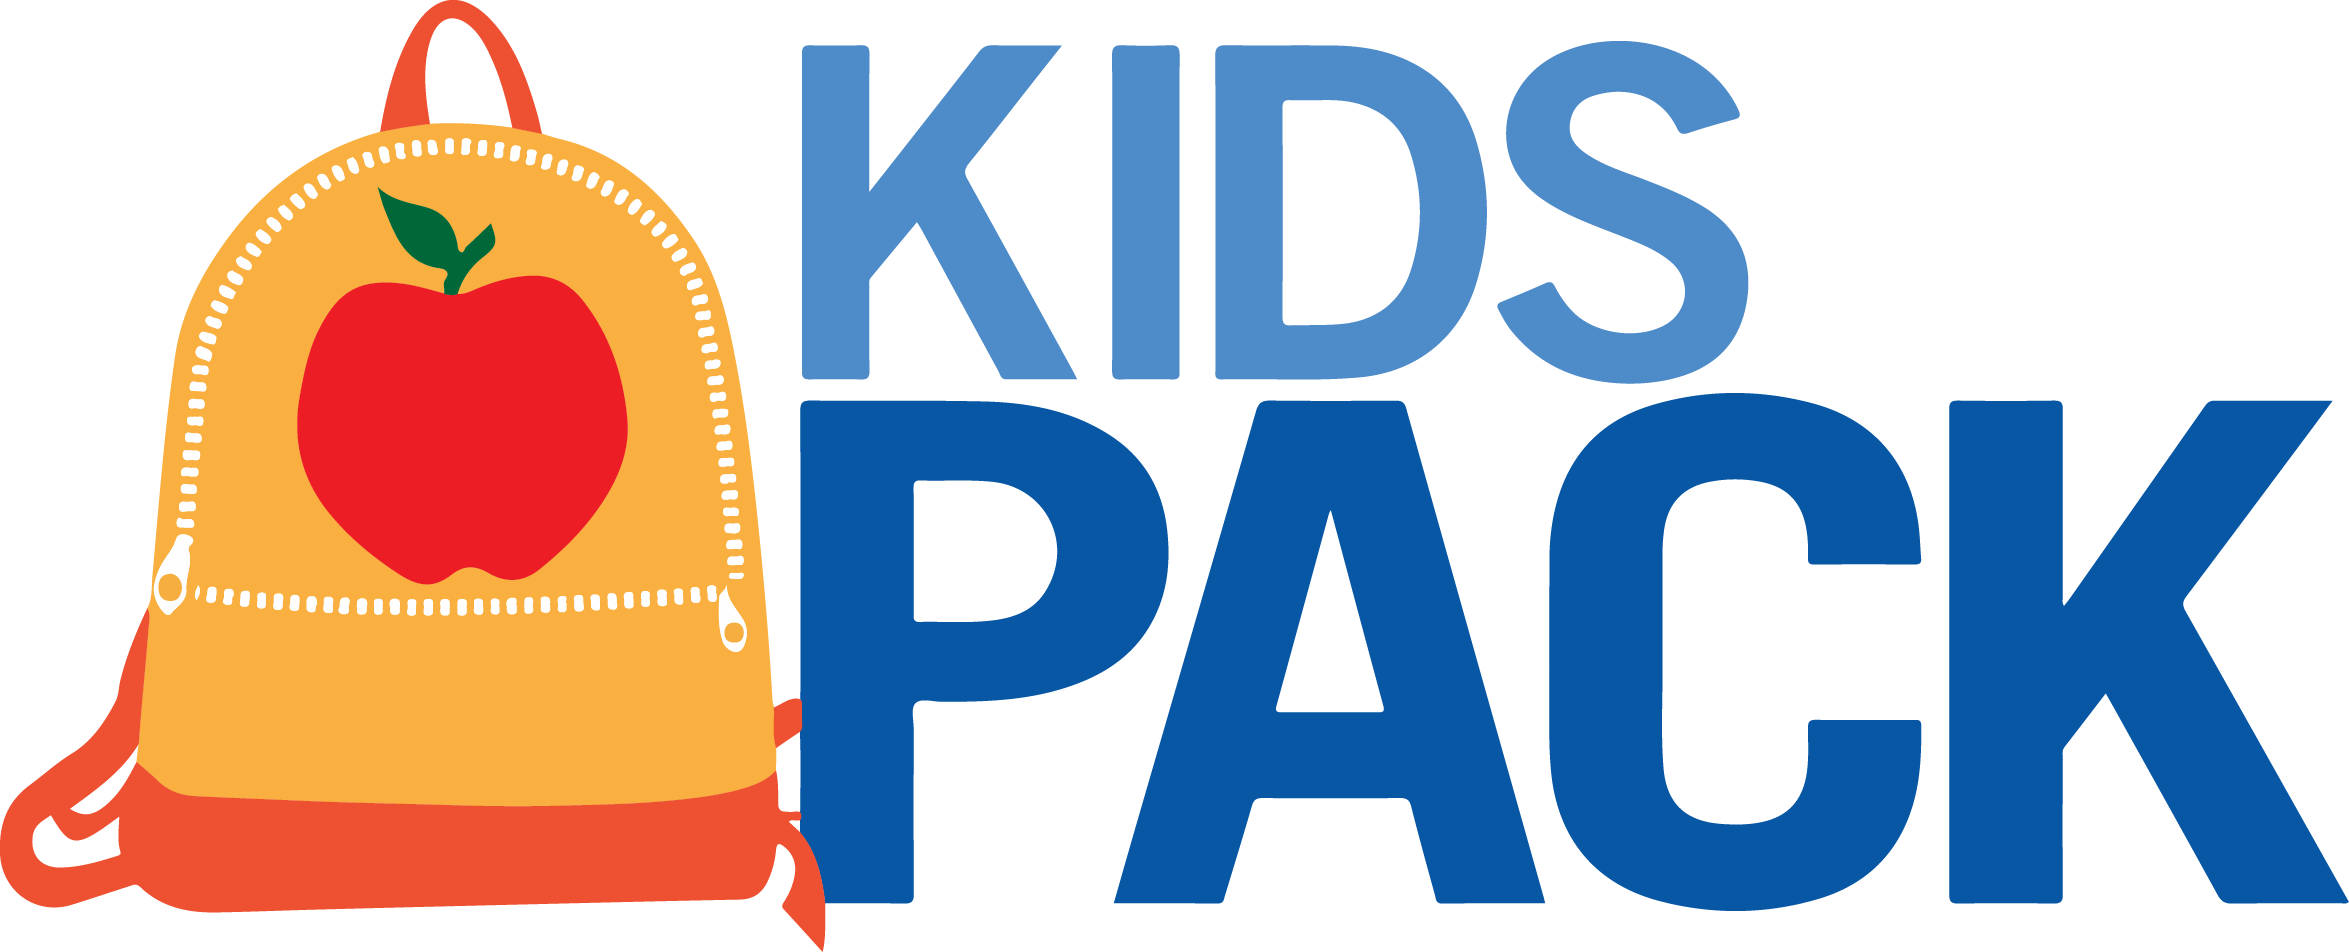 Kids pack feed inland. Hungry clipart hungry kid